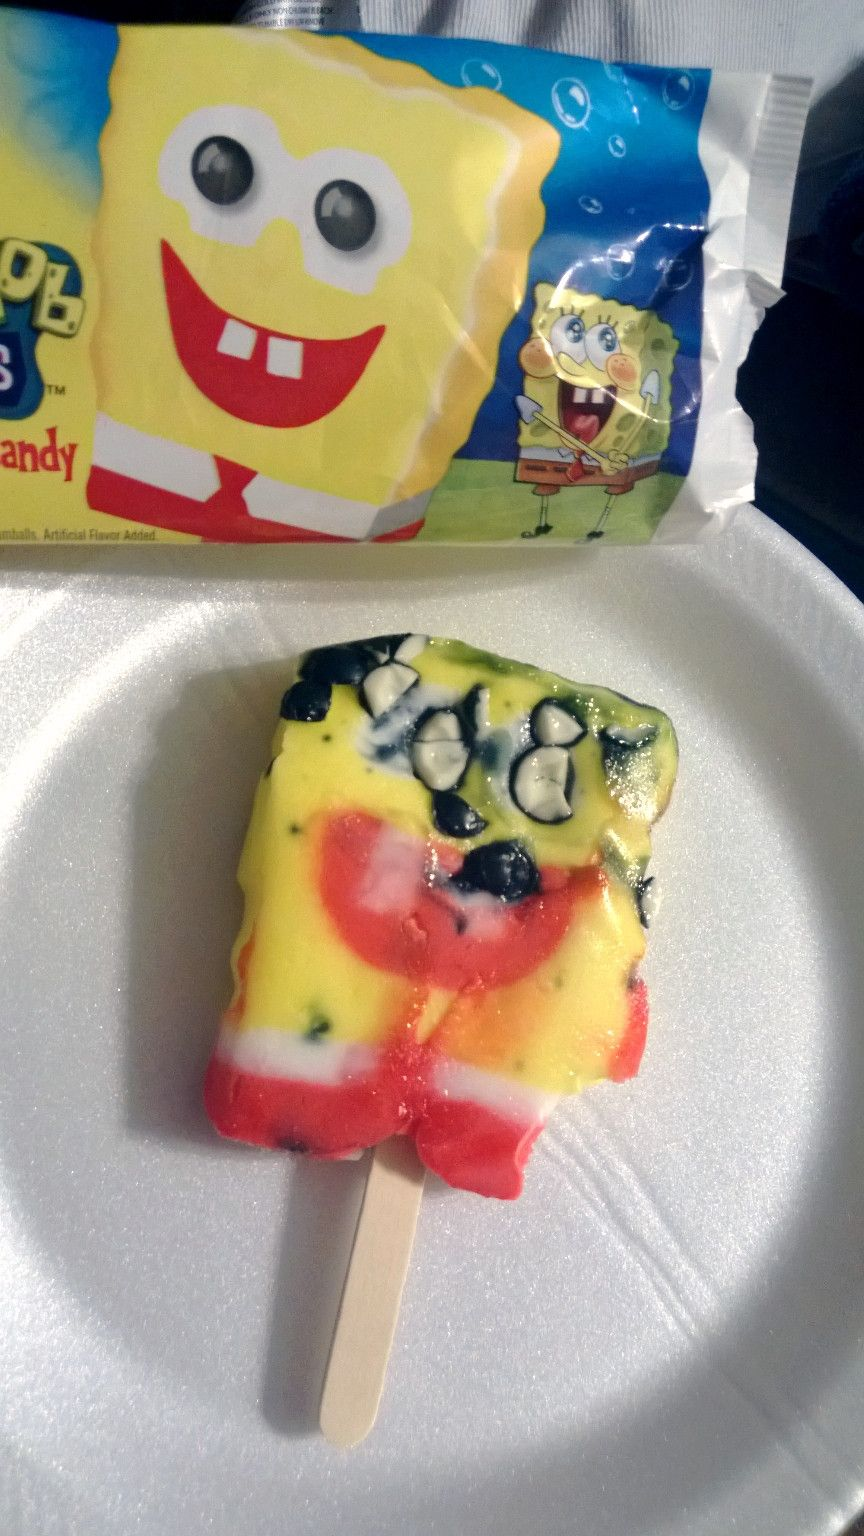 Nailed it! (repost from r/funny) Food fails, Clean funny